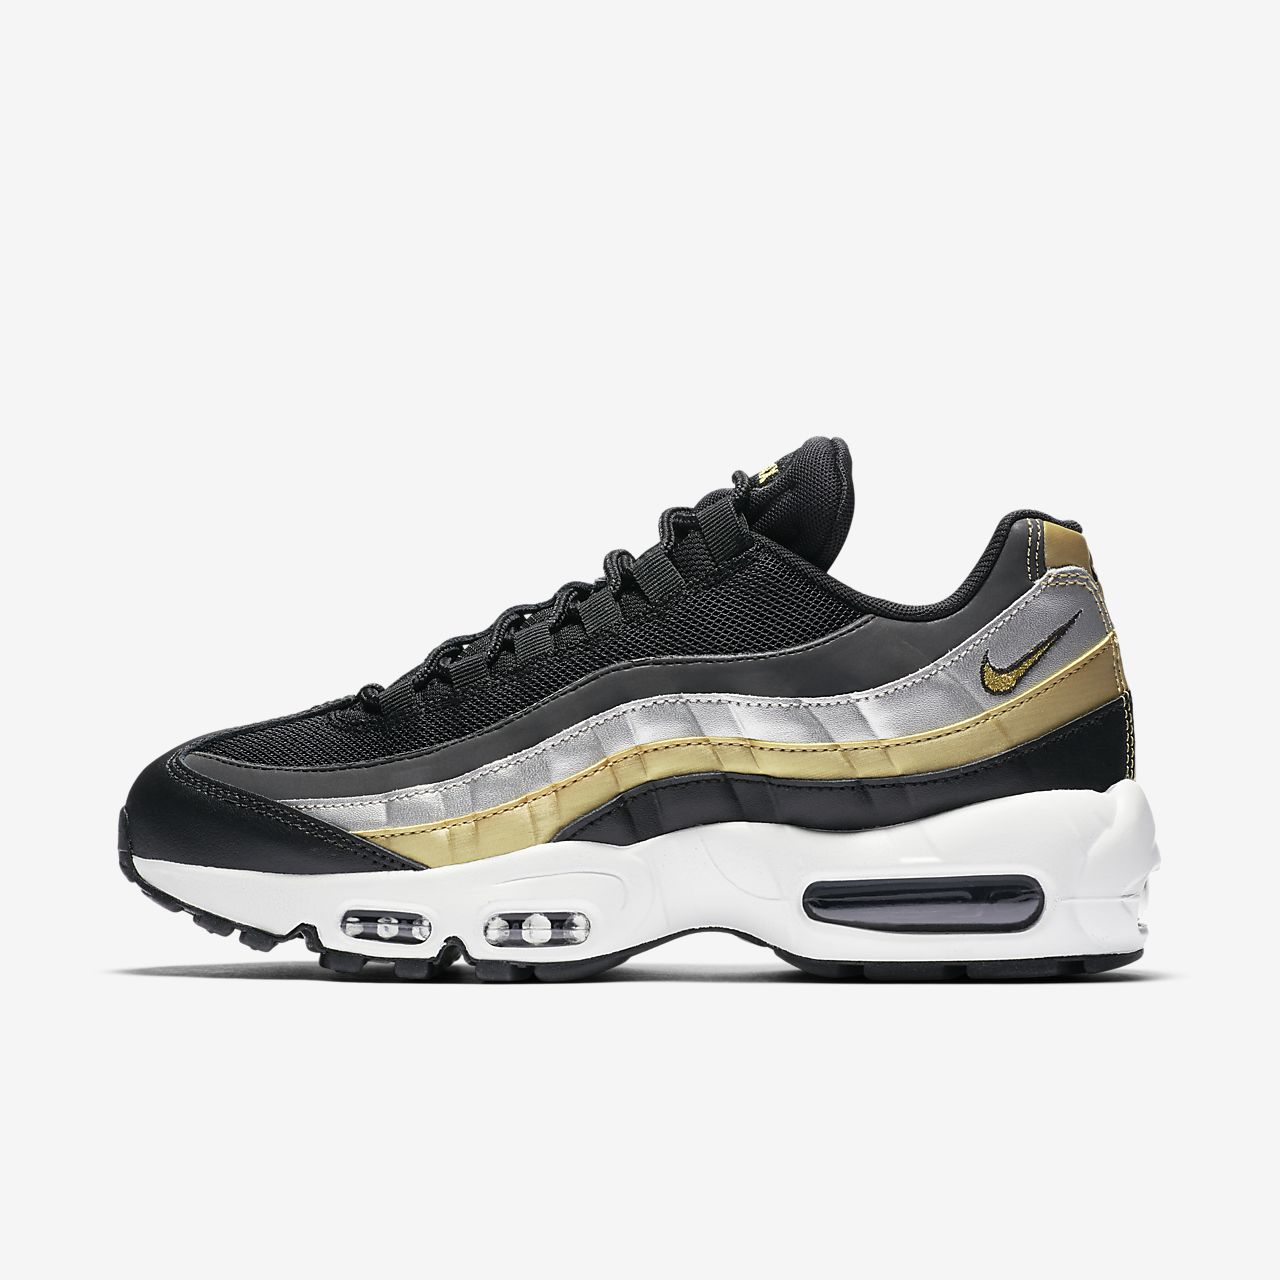 timeless design a57f9 e6a30 Womens Shoe. Nike Air Max 95 Lux Metallic